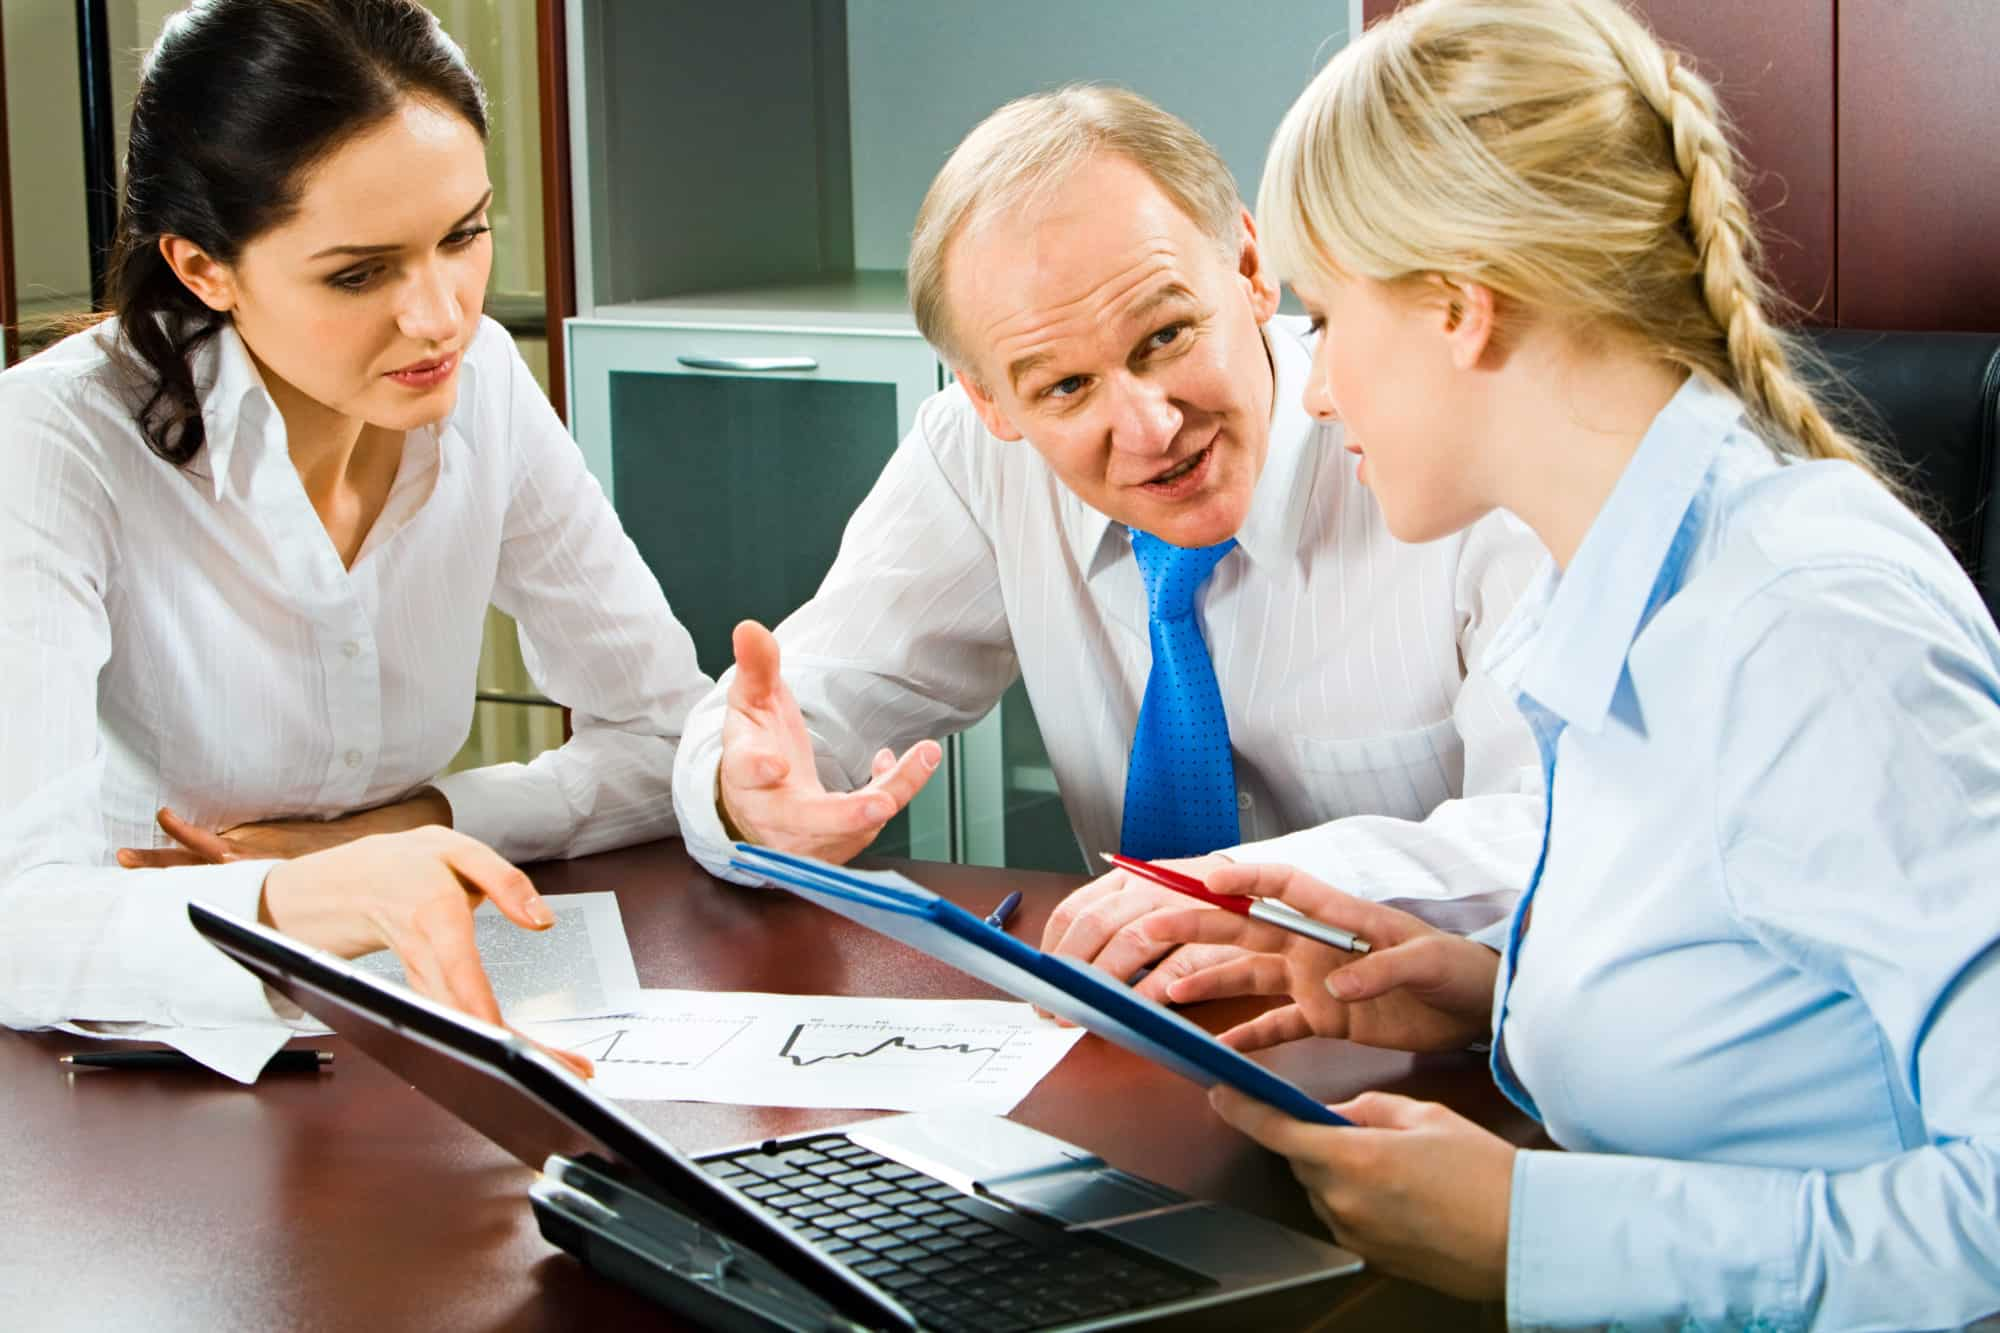 consult a psychologist before estate planning so you sort out the family business issues first